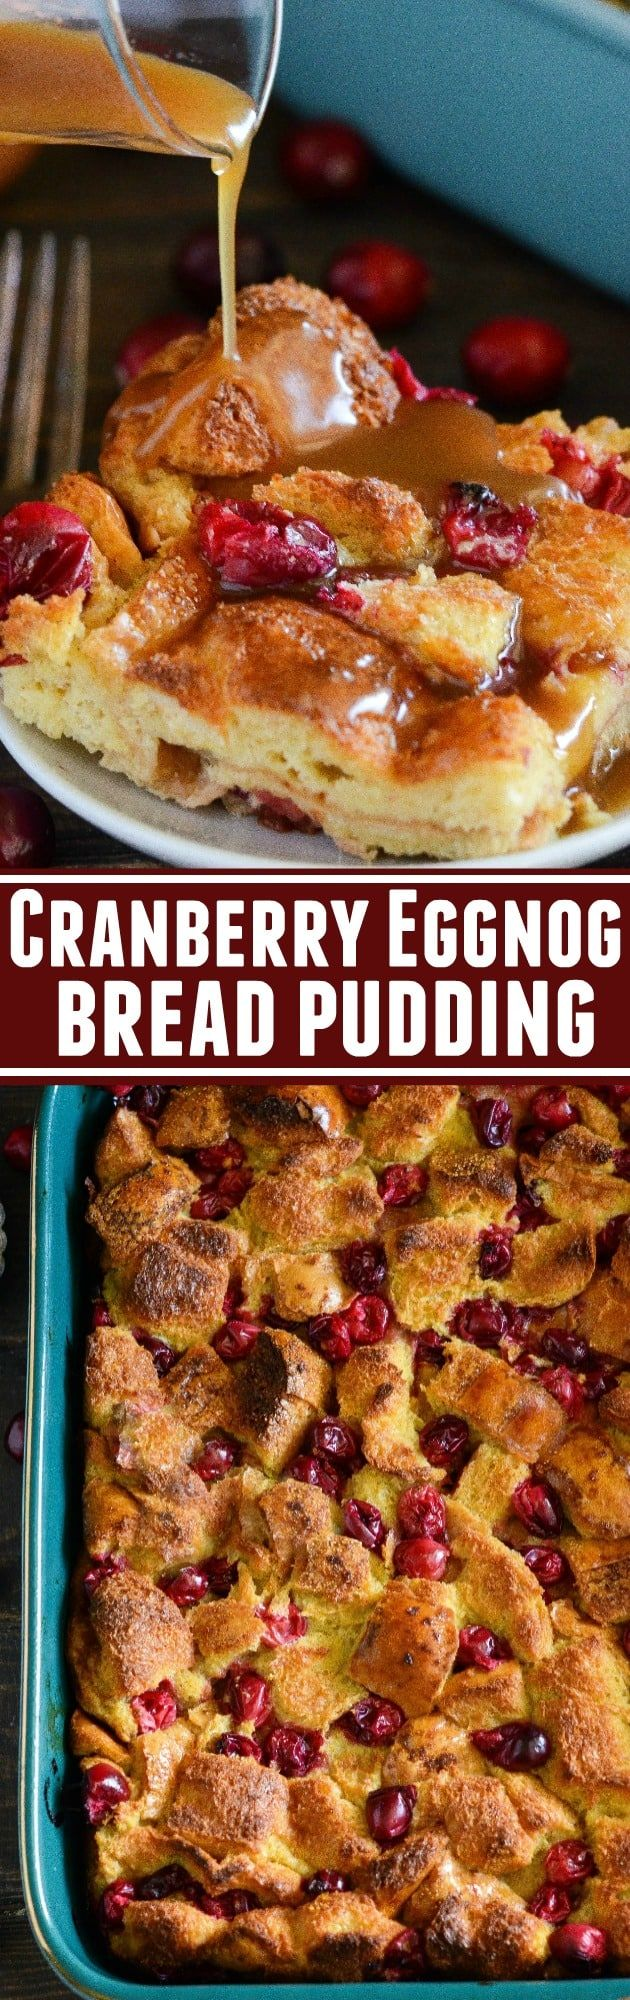 Cranberry Eggnog Bread Pudding sponsored by Handsome Farm Eggs: kick off the holidays with this rich bread pudding with cranberries, eggnog, cinnamon and a generous pour of buttery rum sauce!